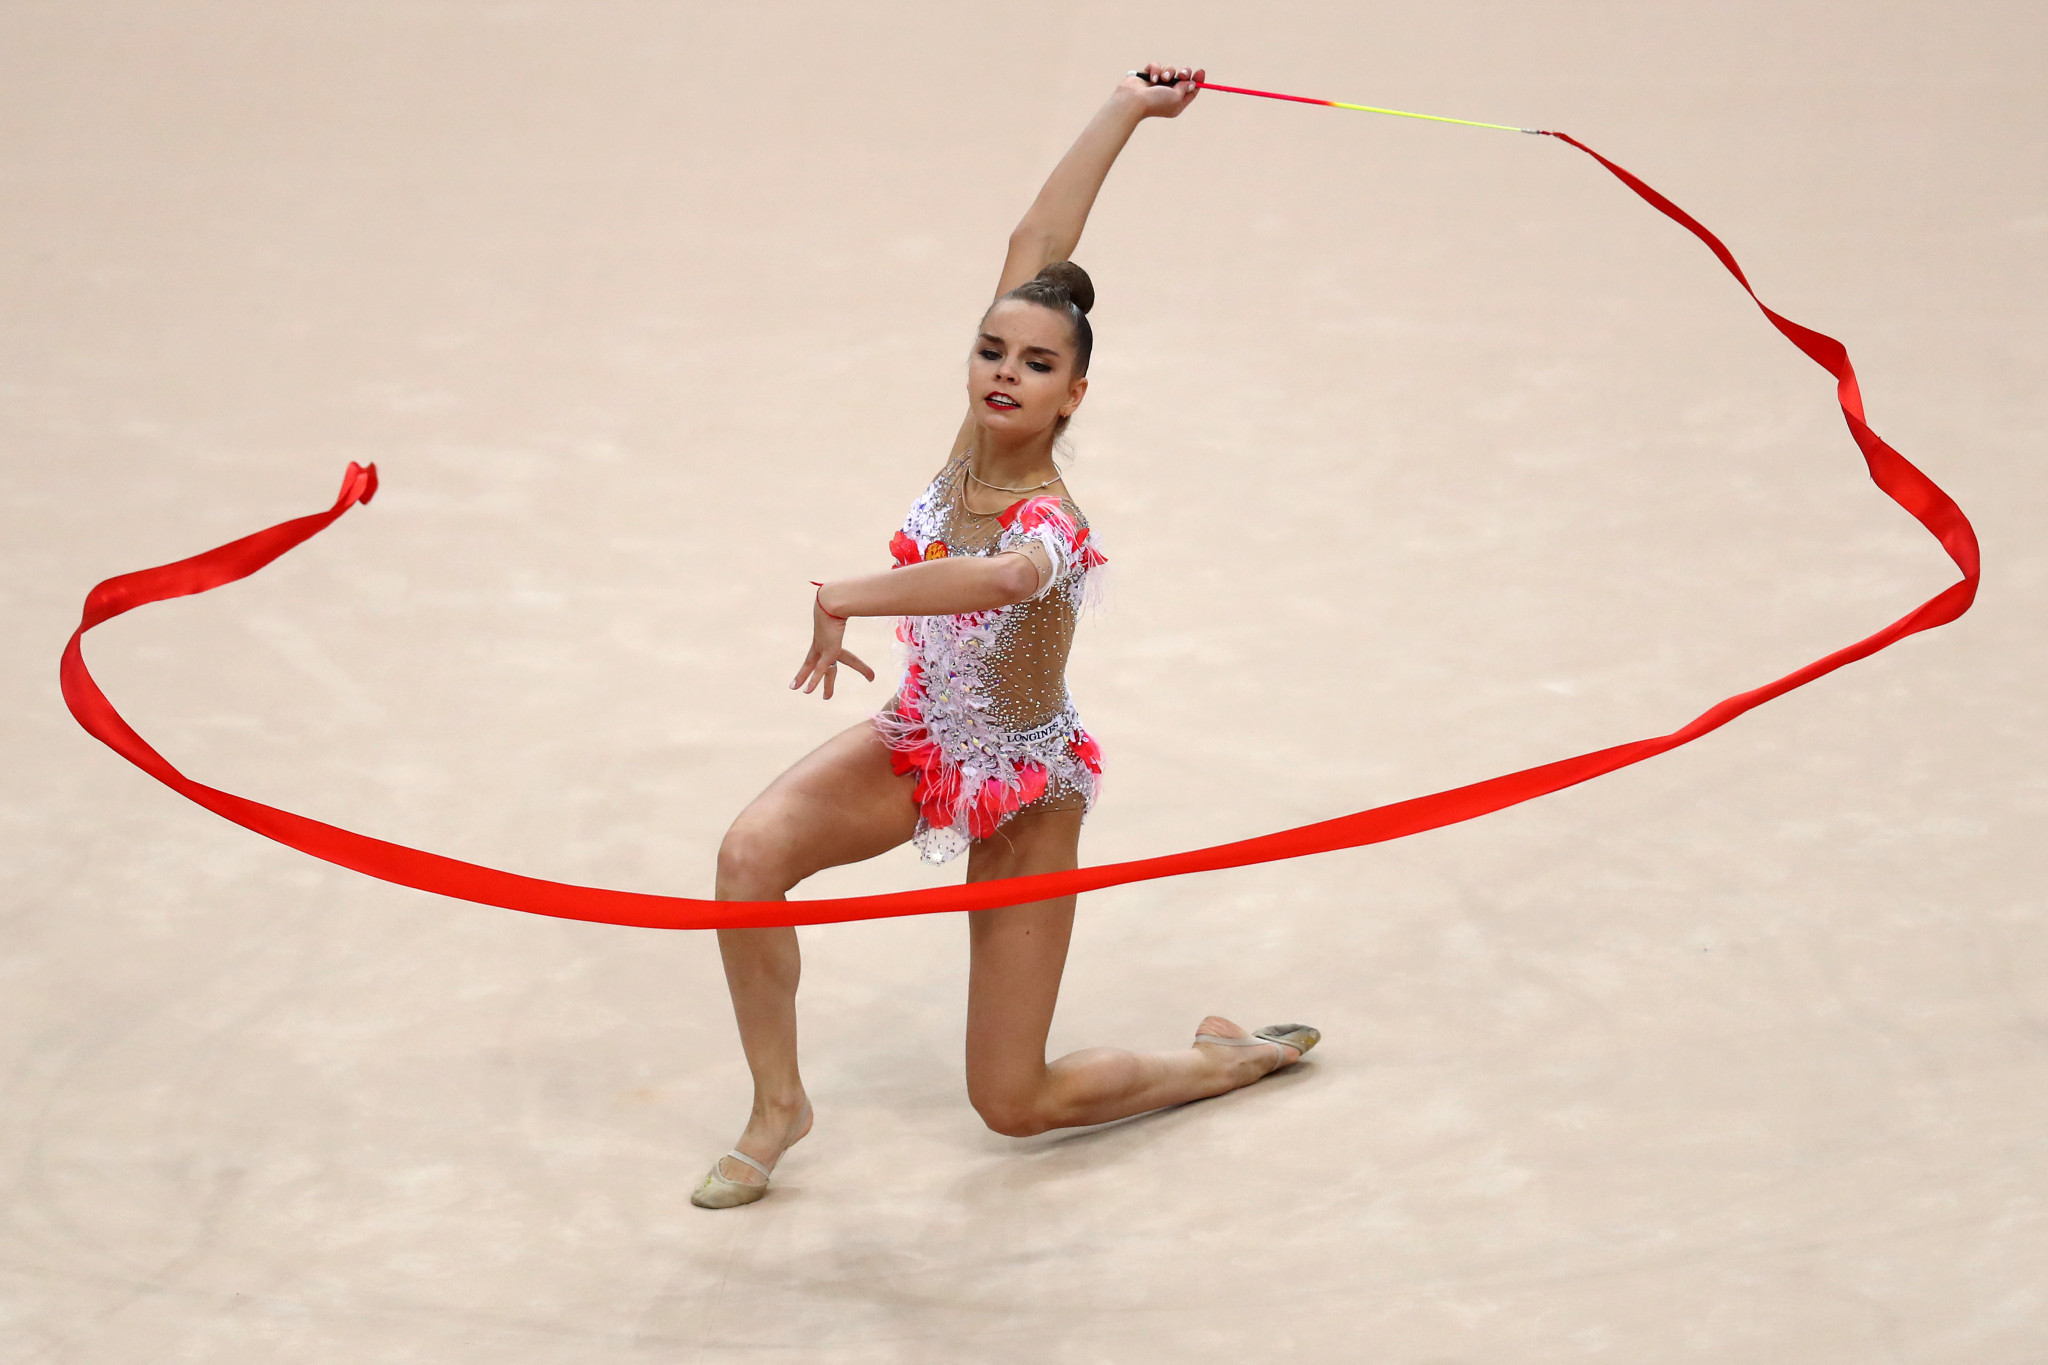 World champion Averina claims third gold of Minsk 2019 in rhythmic gymnastics